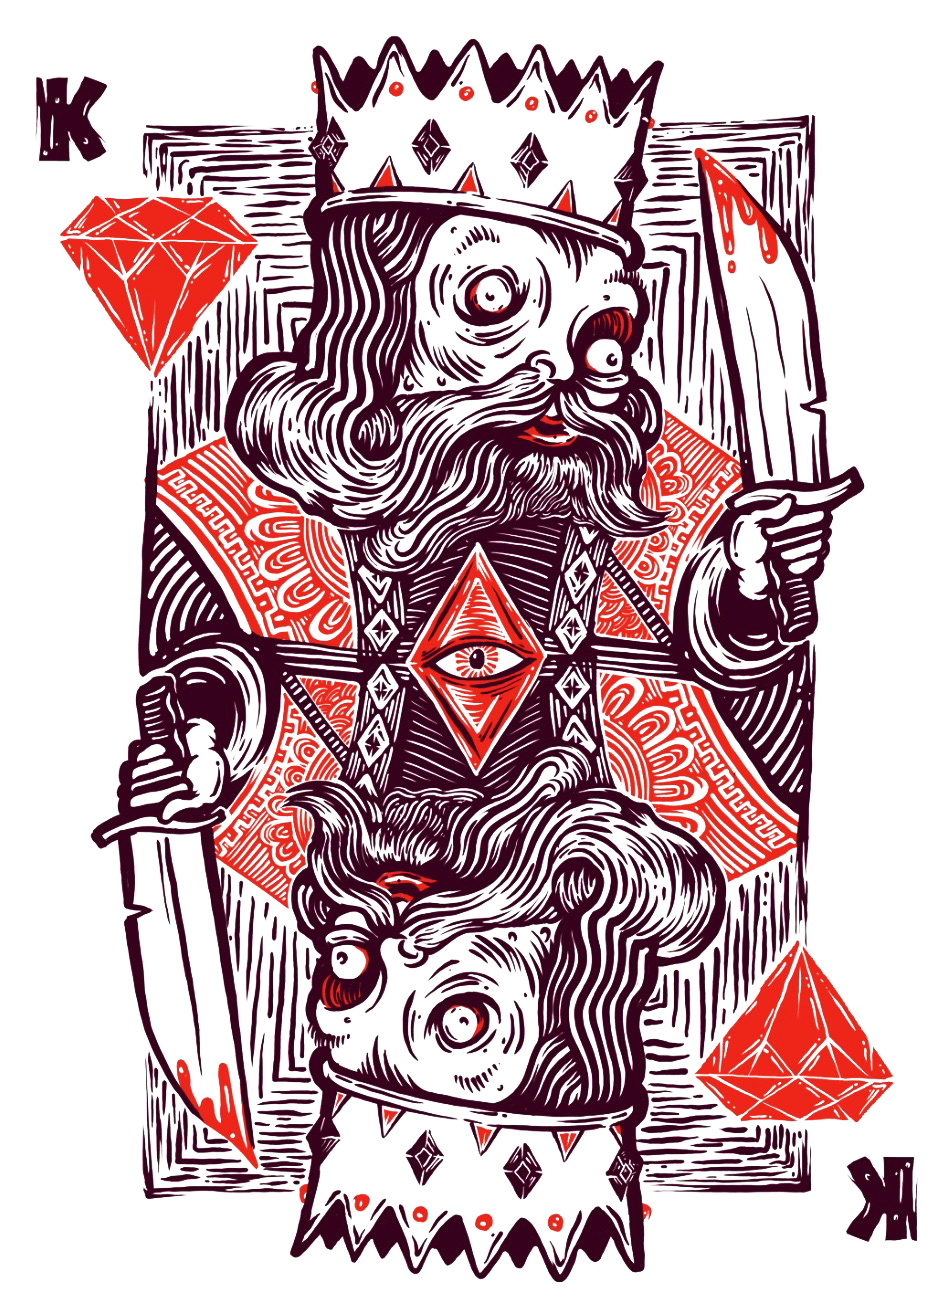 Grab the King of Diamonds Here